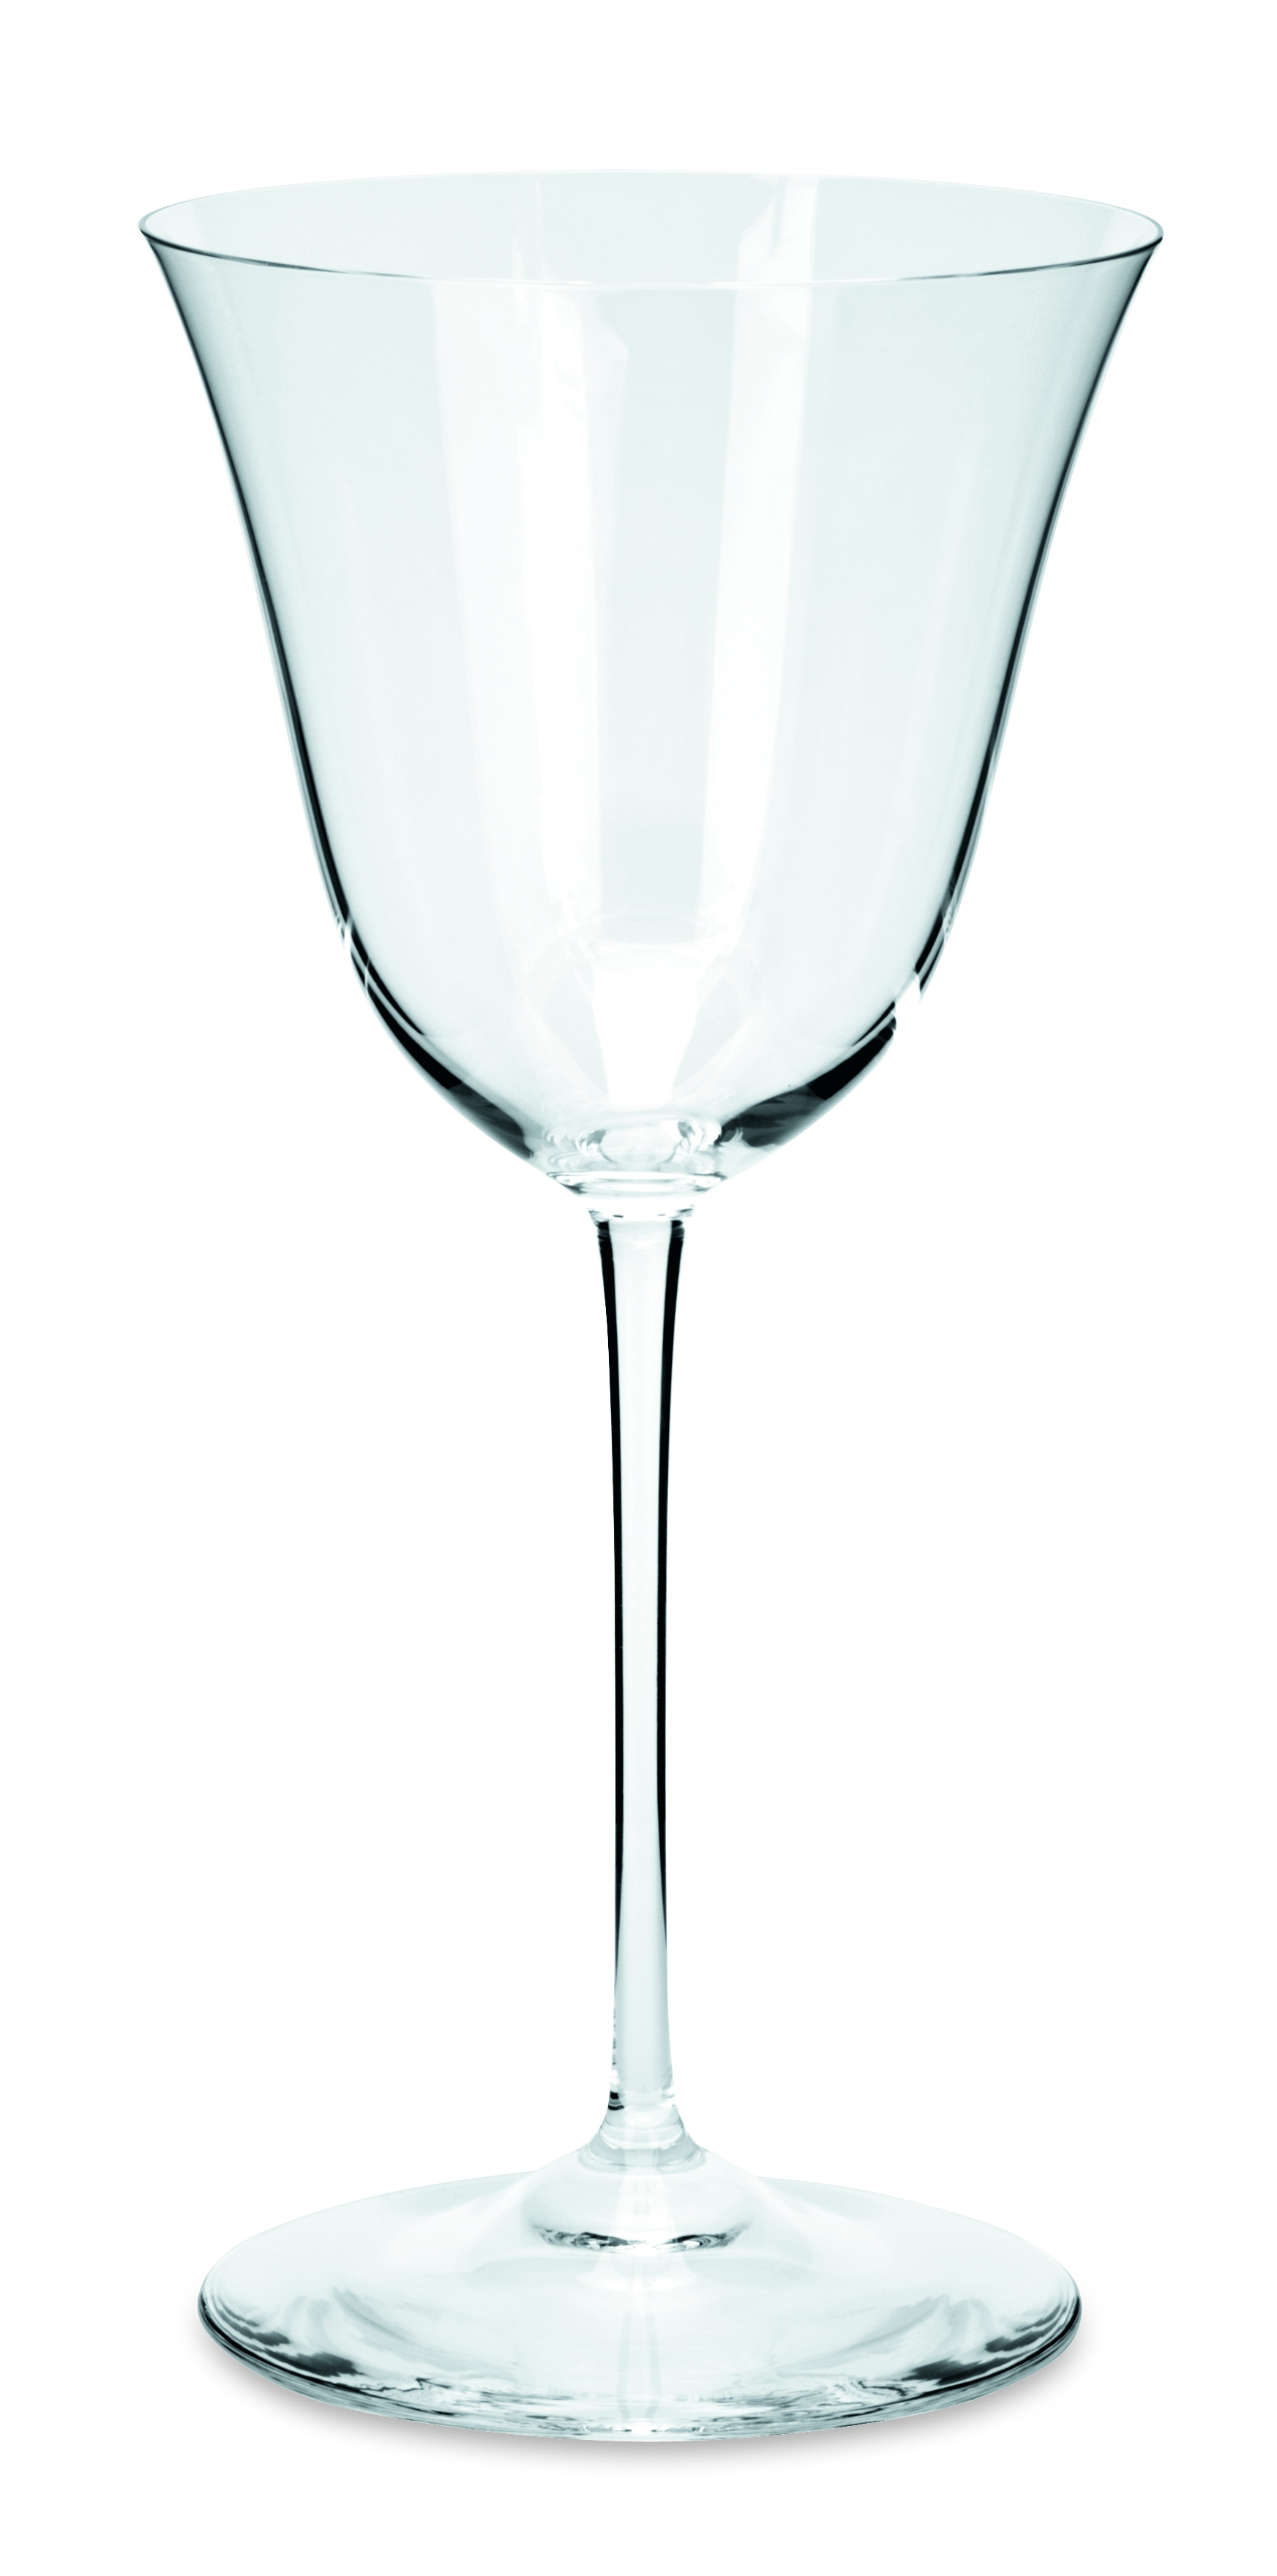 Weinkelch Glas Theresienthal Dagmar White Wine Glass Plain